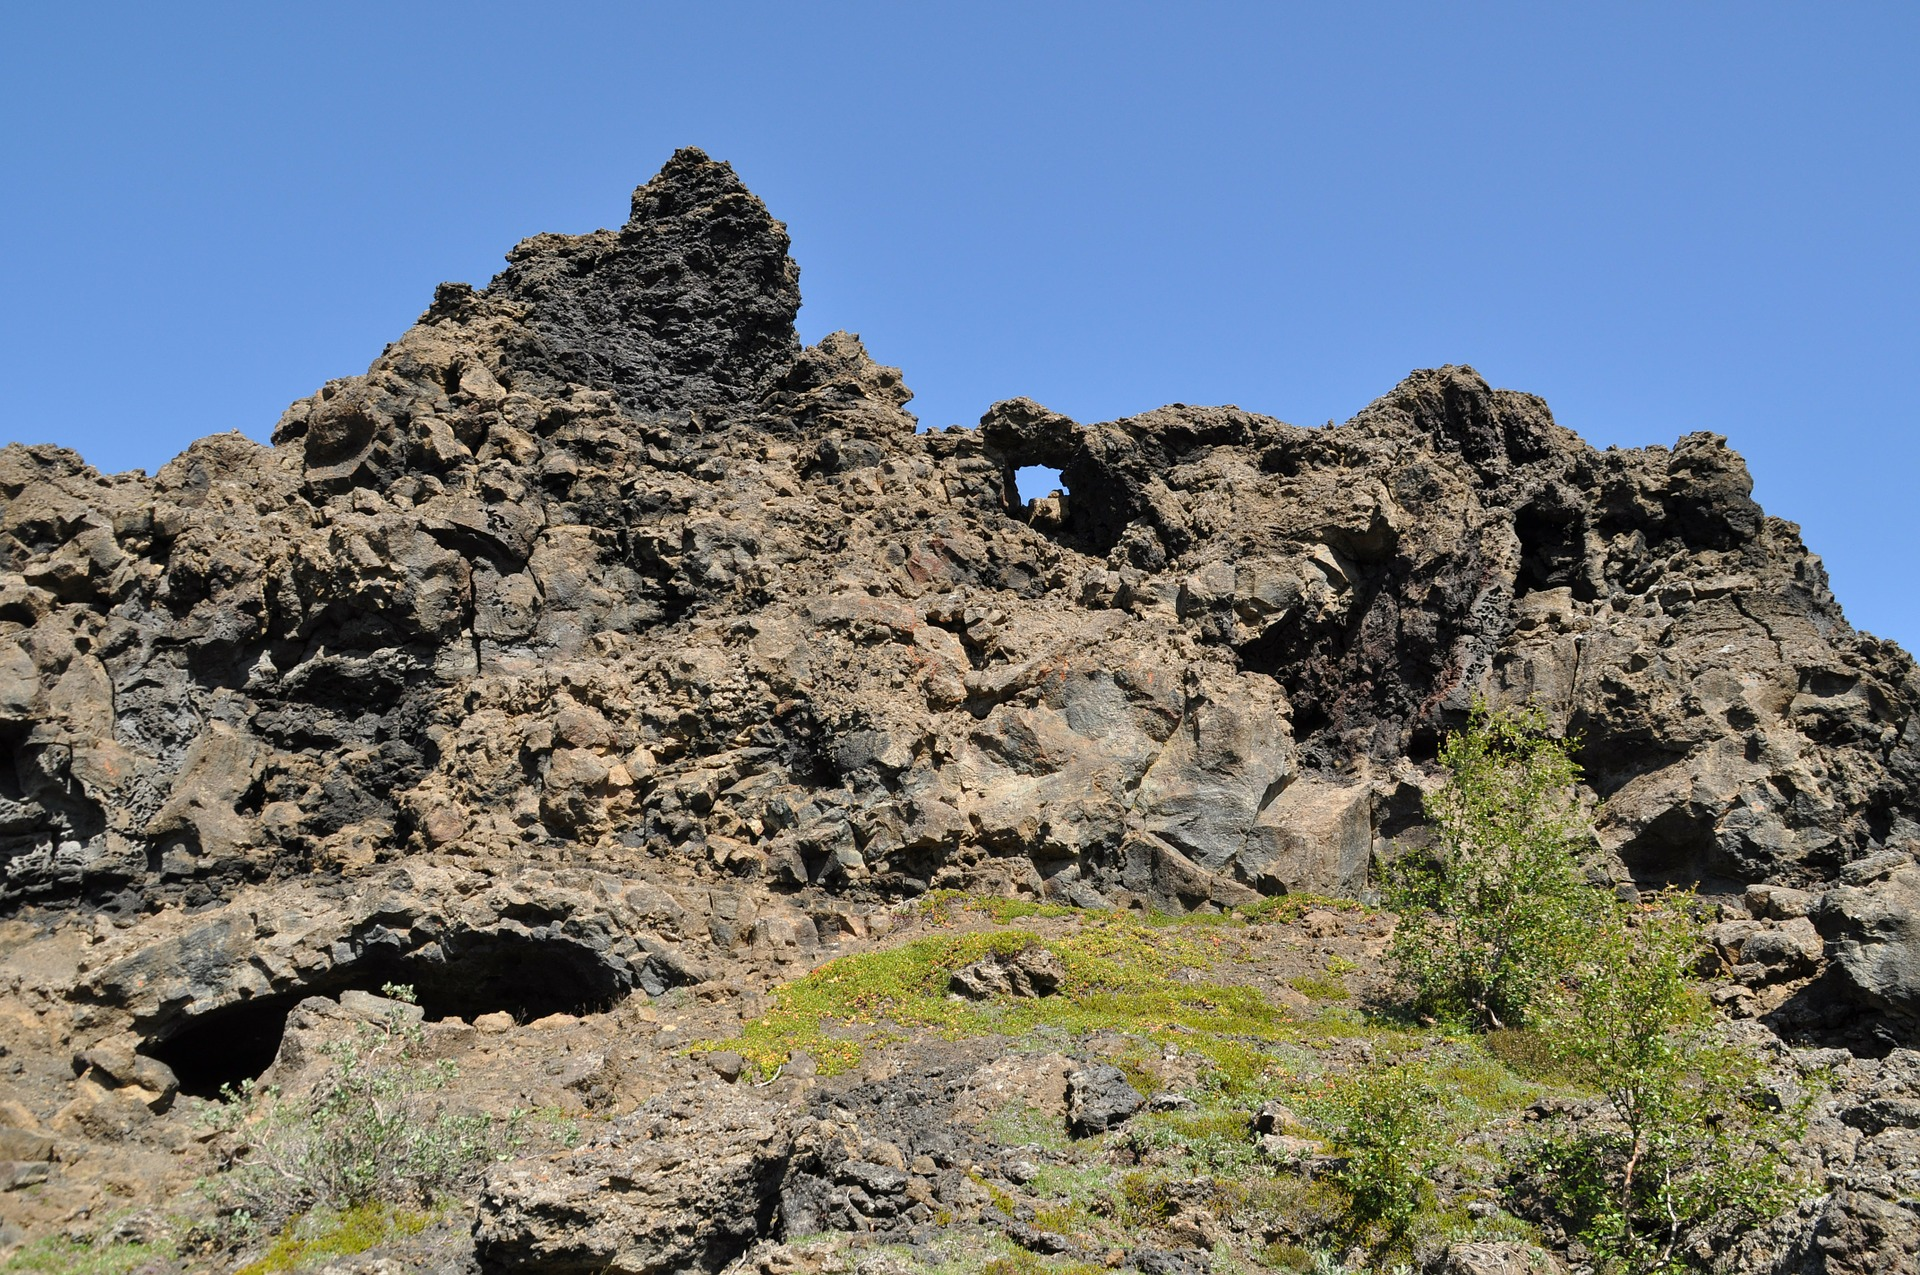 Rock formation at Dimmuborgir in Iceland